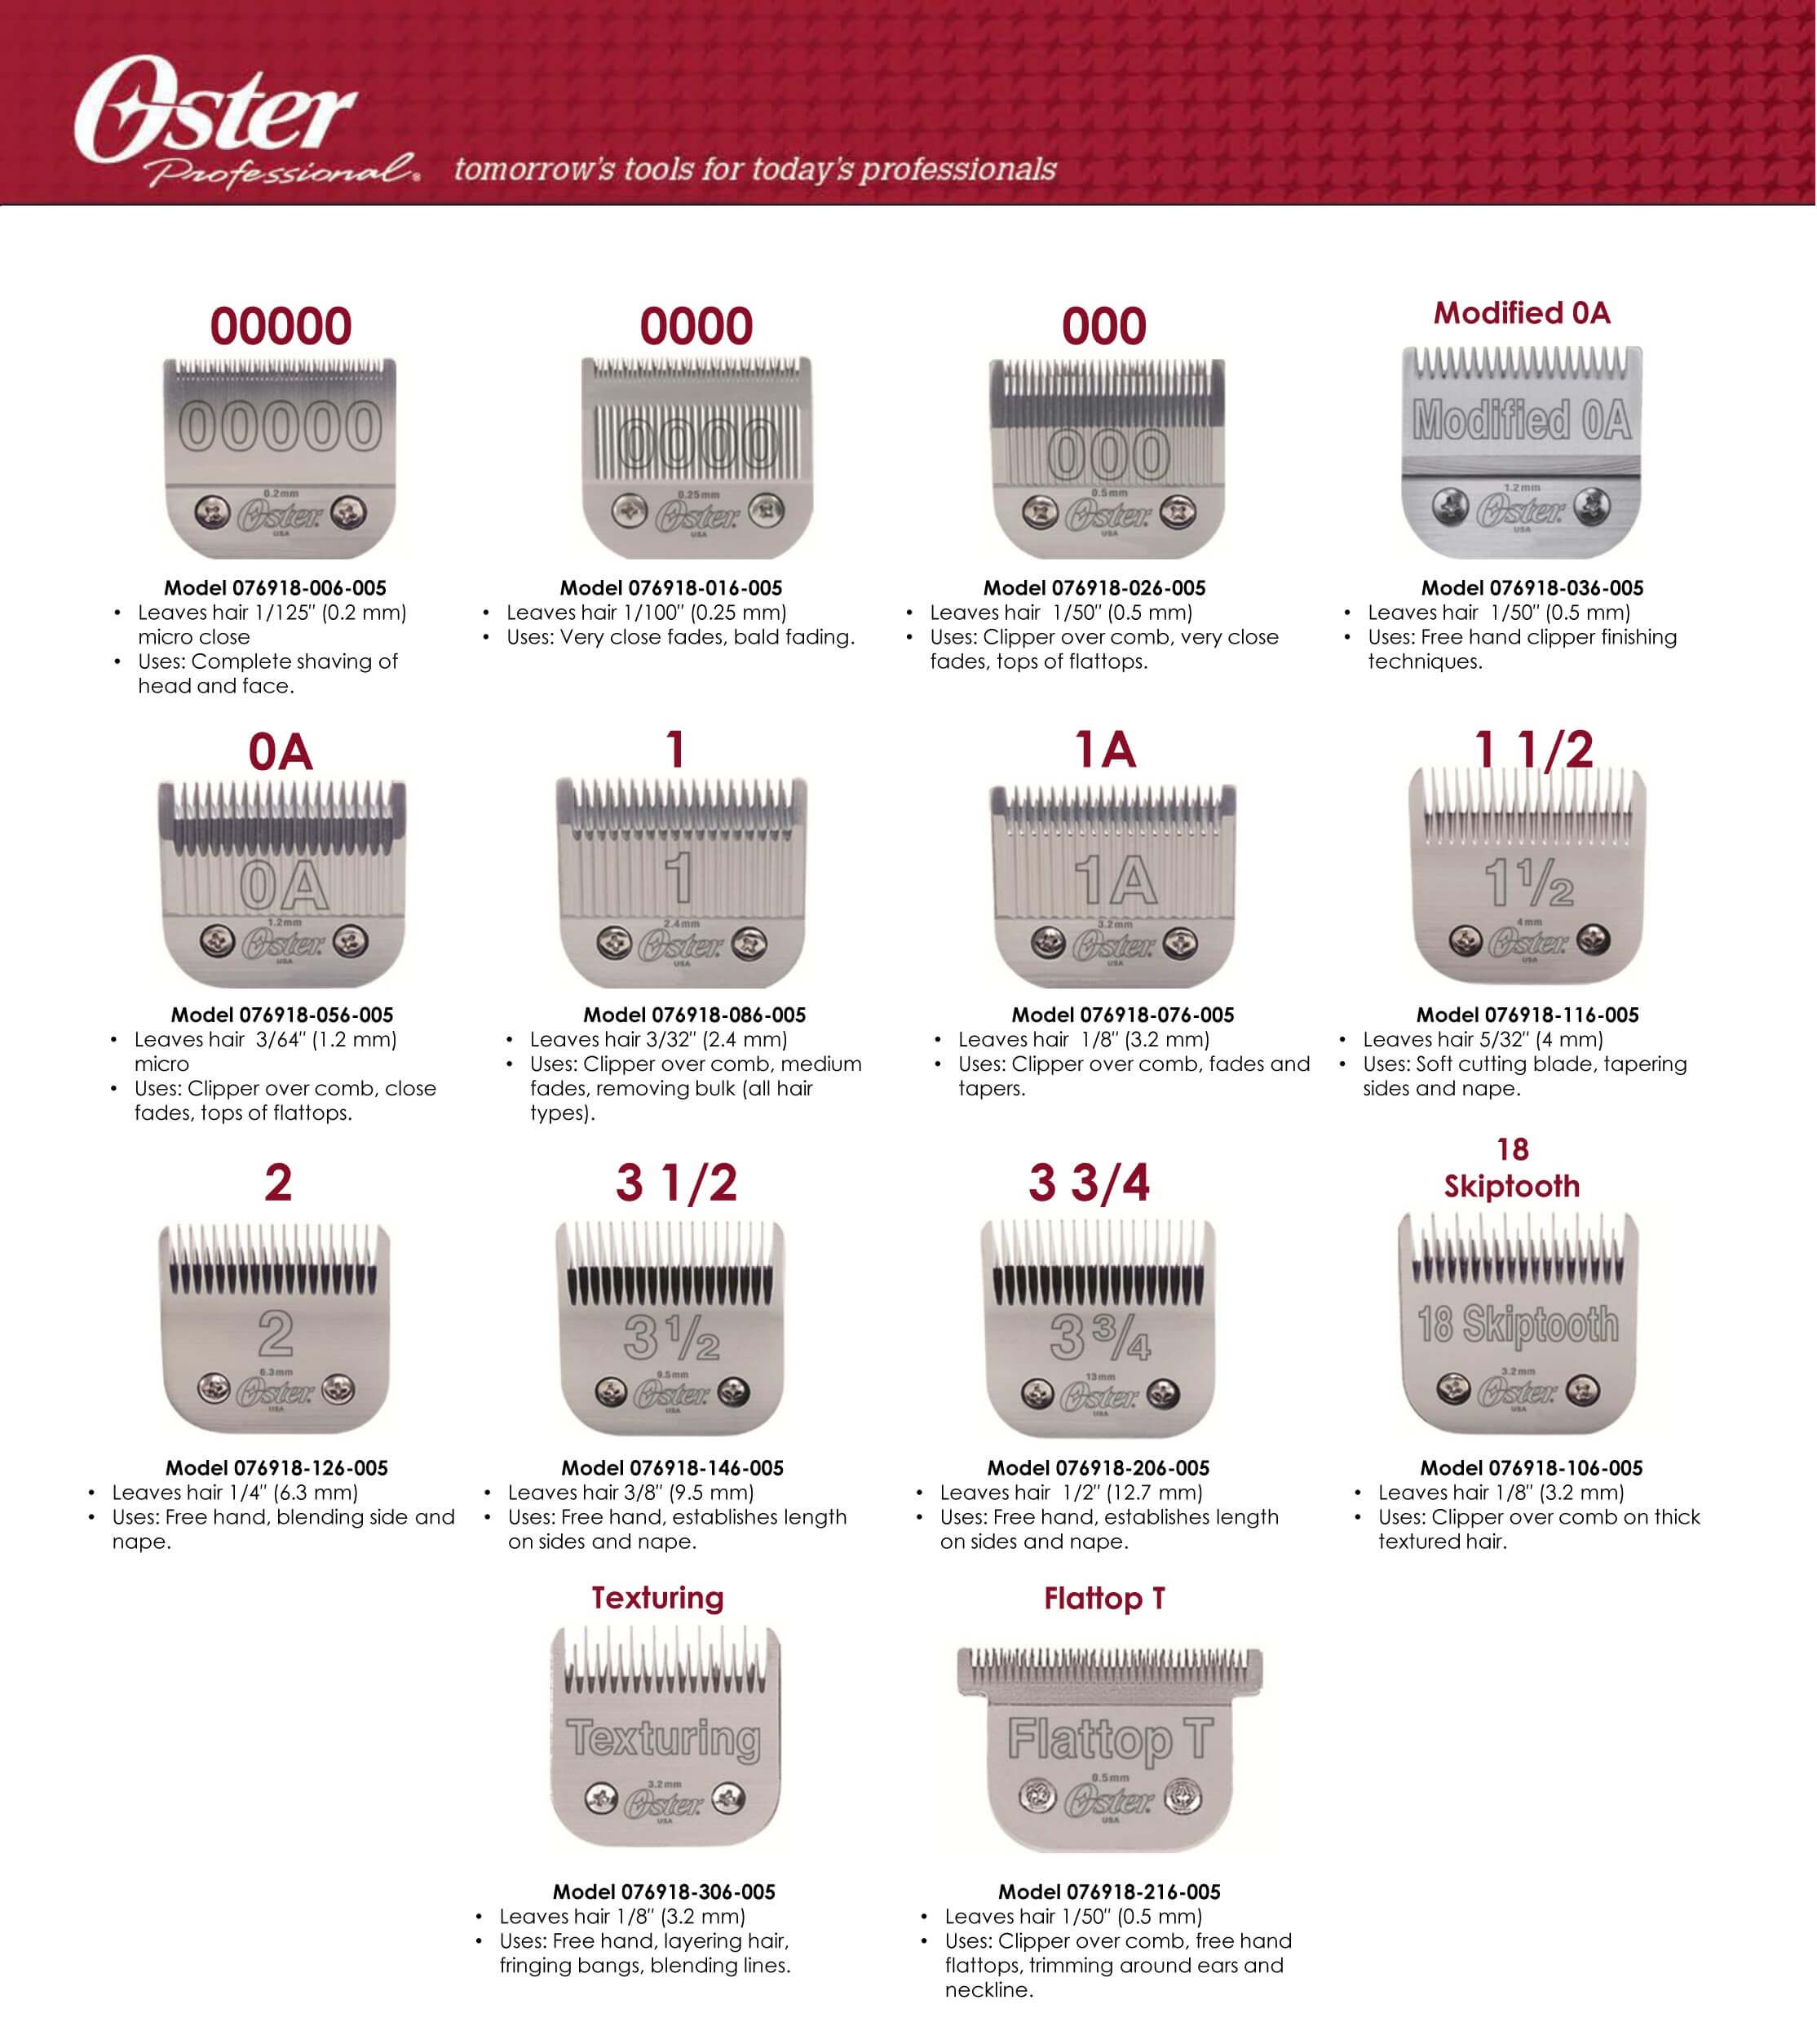 Oster-Hair-Clipper-Sizes.jpg 112,1121128×112,12 pixels  Hair clipper